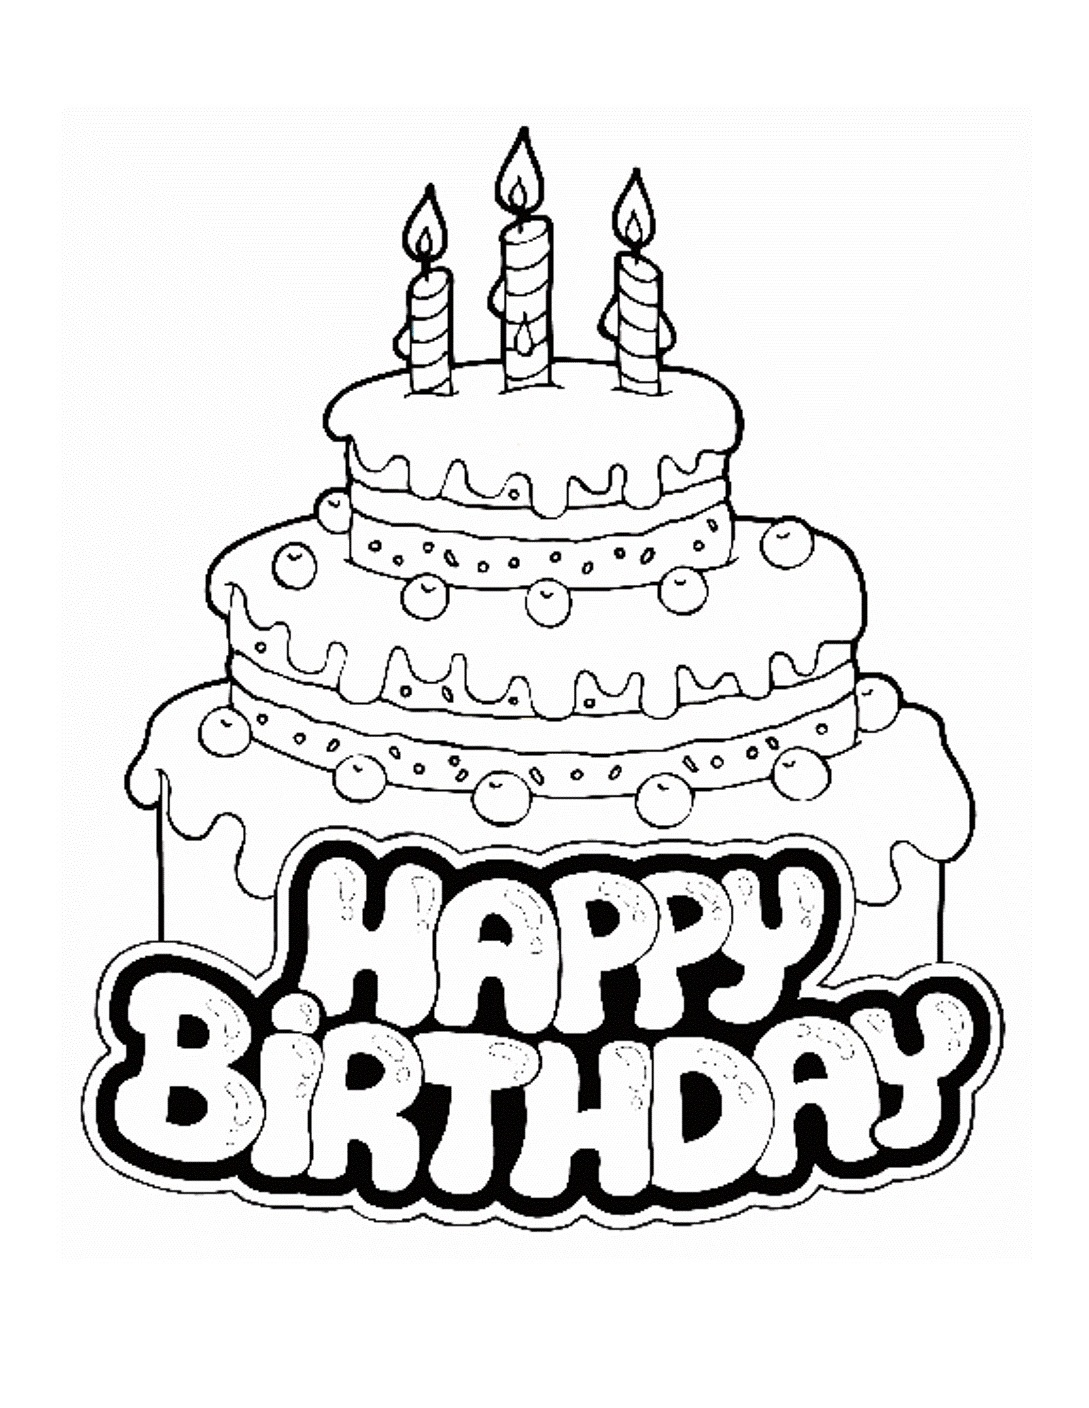 Free Printable Birthday Cake Coloring Pages For Kids - Free Printable Pictures Of Birthday Cakes